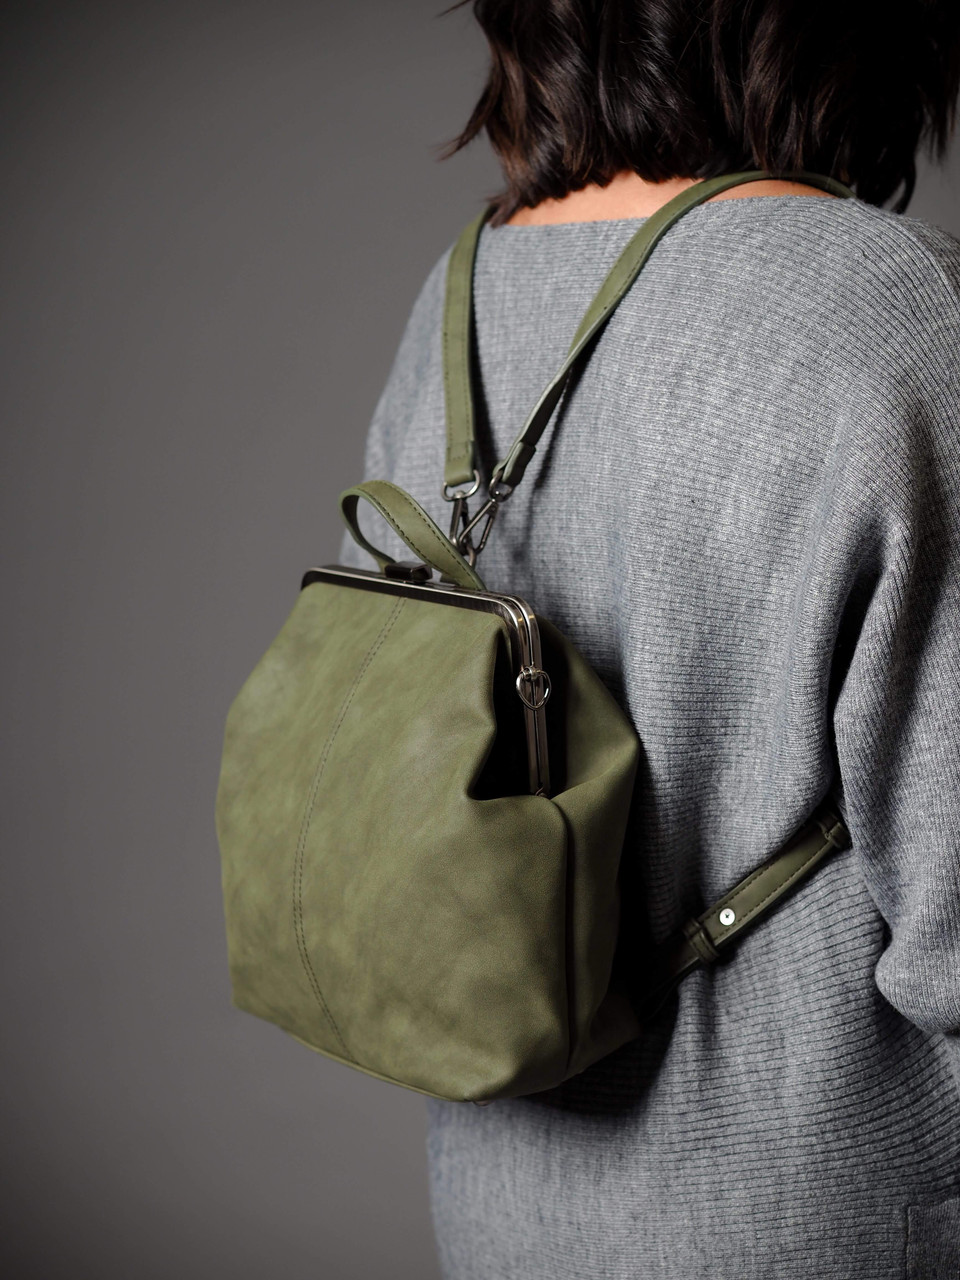 vegan leather olive green convertible backpack